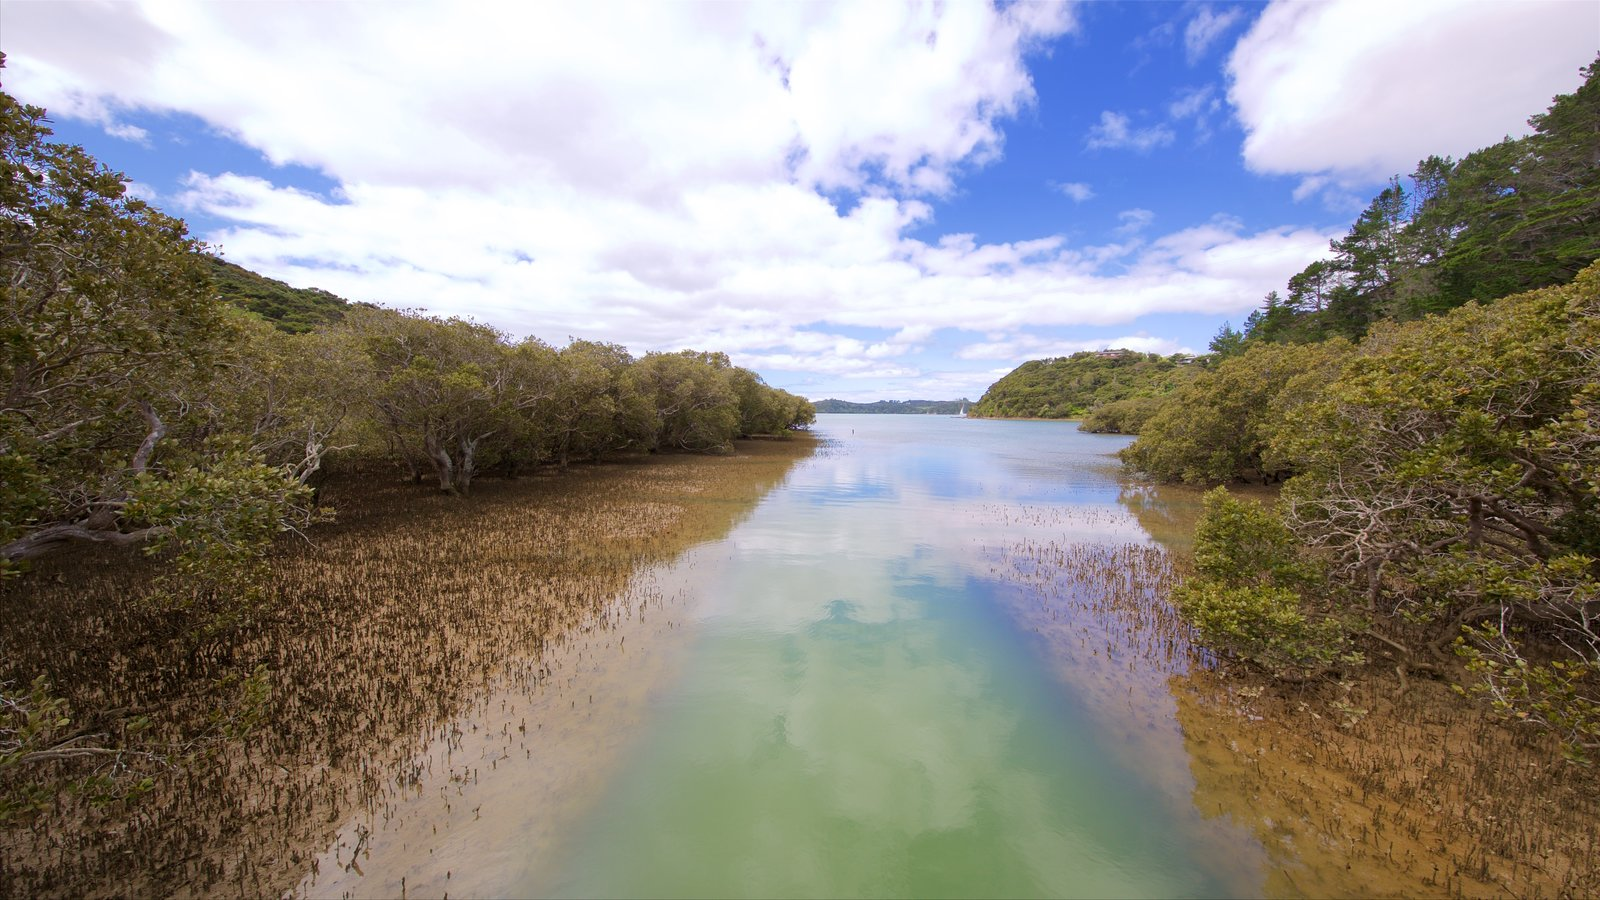 Paihia featuring mangroves and general coastal views